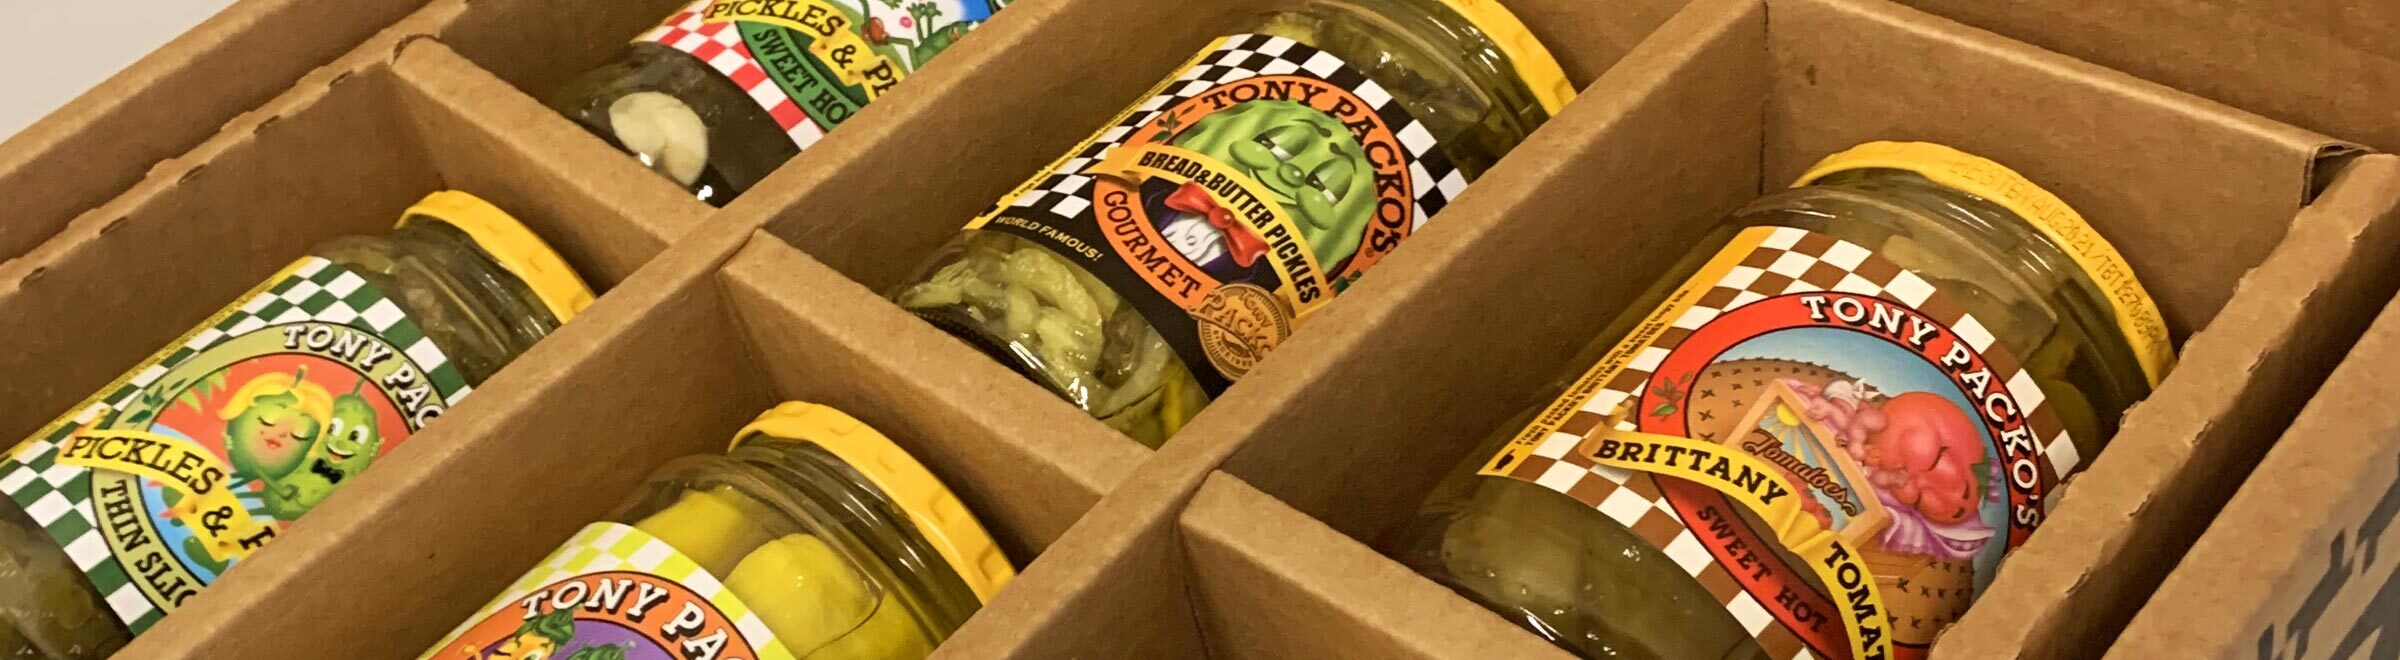 Tony Packo's Gift Pack open box with a variety of Packos Pickle's